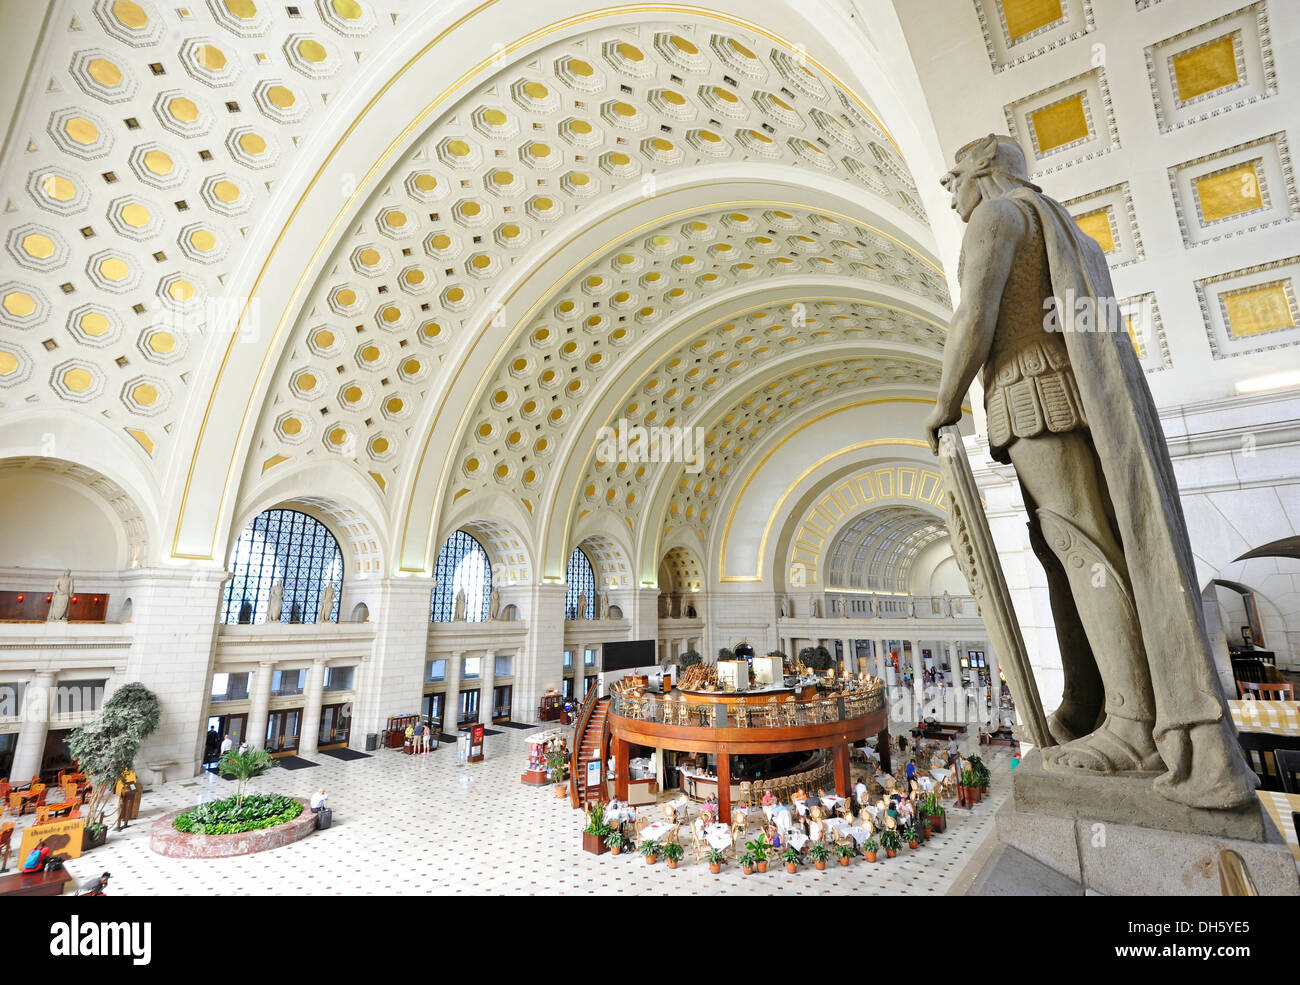 Interior view, Great Main Hall, larger than life statue, waiting room, Union Station, Washington DC, District of Columbia - Stock Image